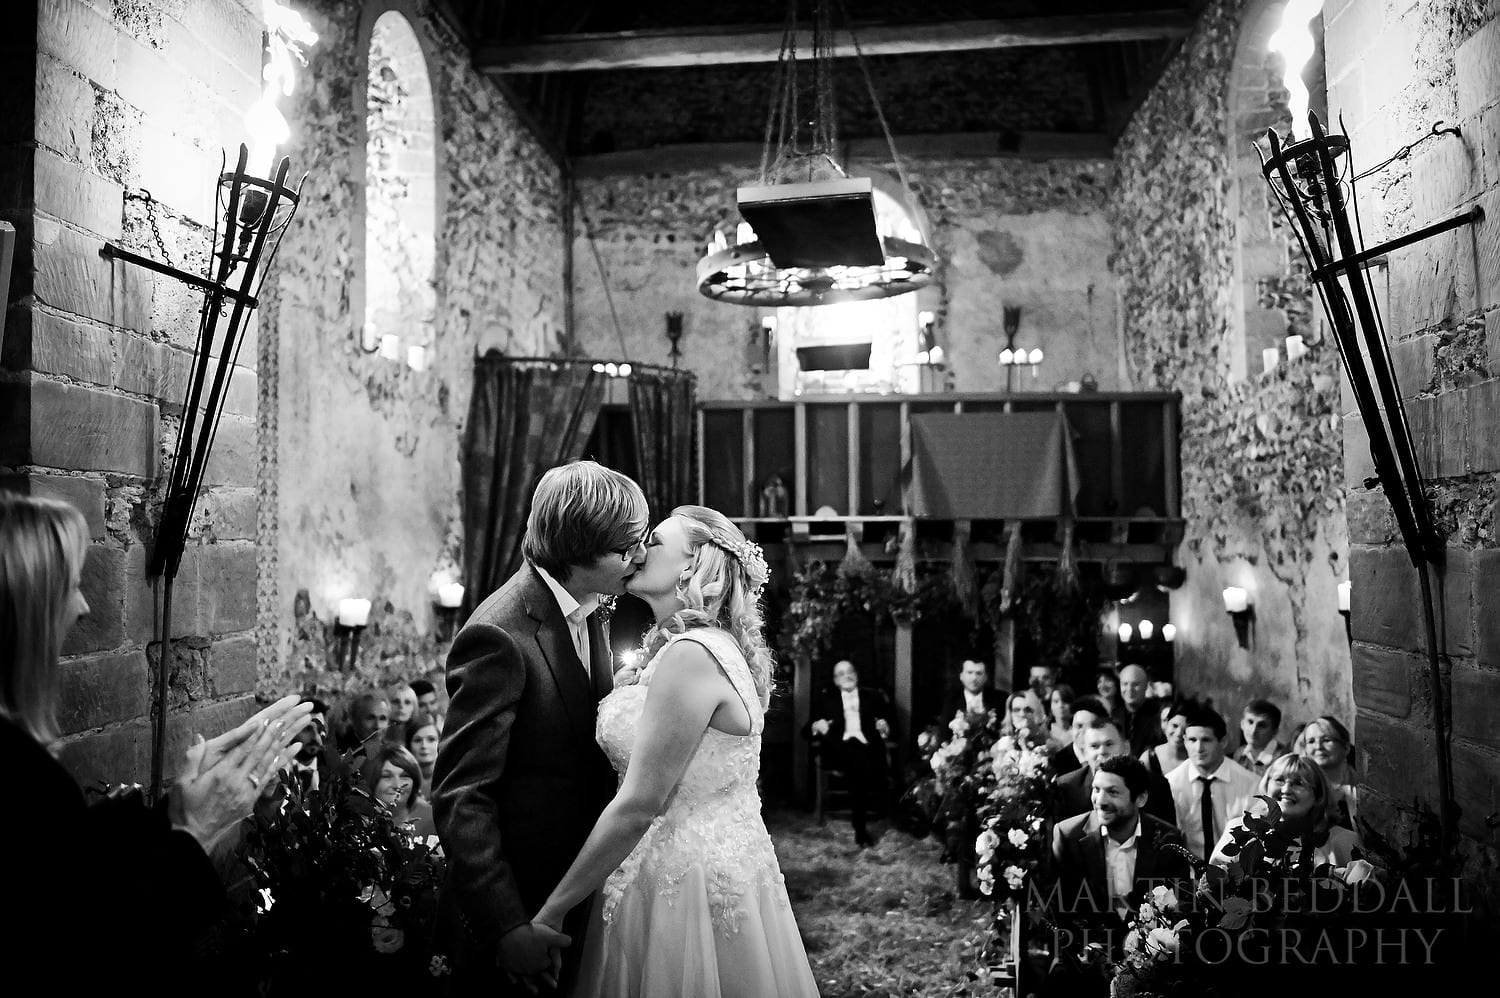 Bride and groom kiss at Lost Village of Dode wedding ceremony